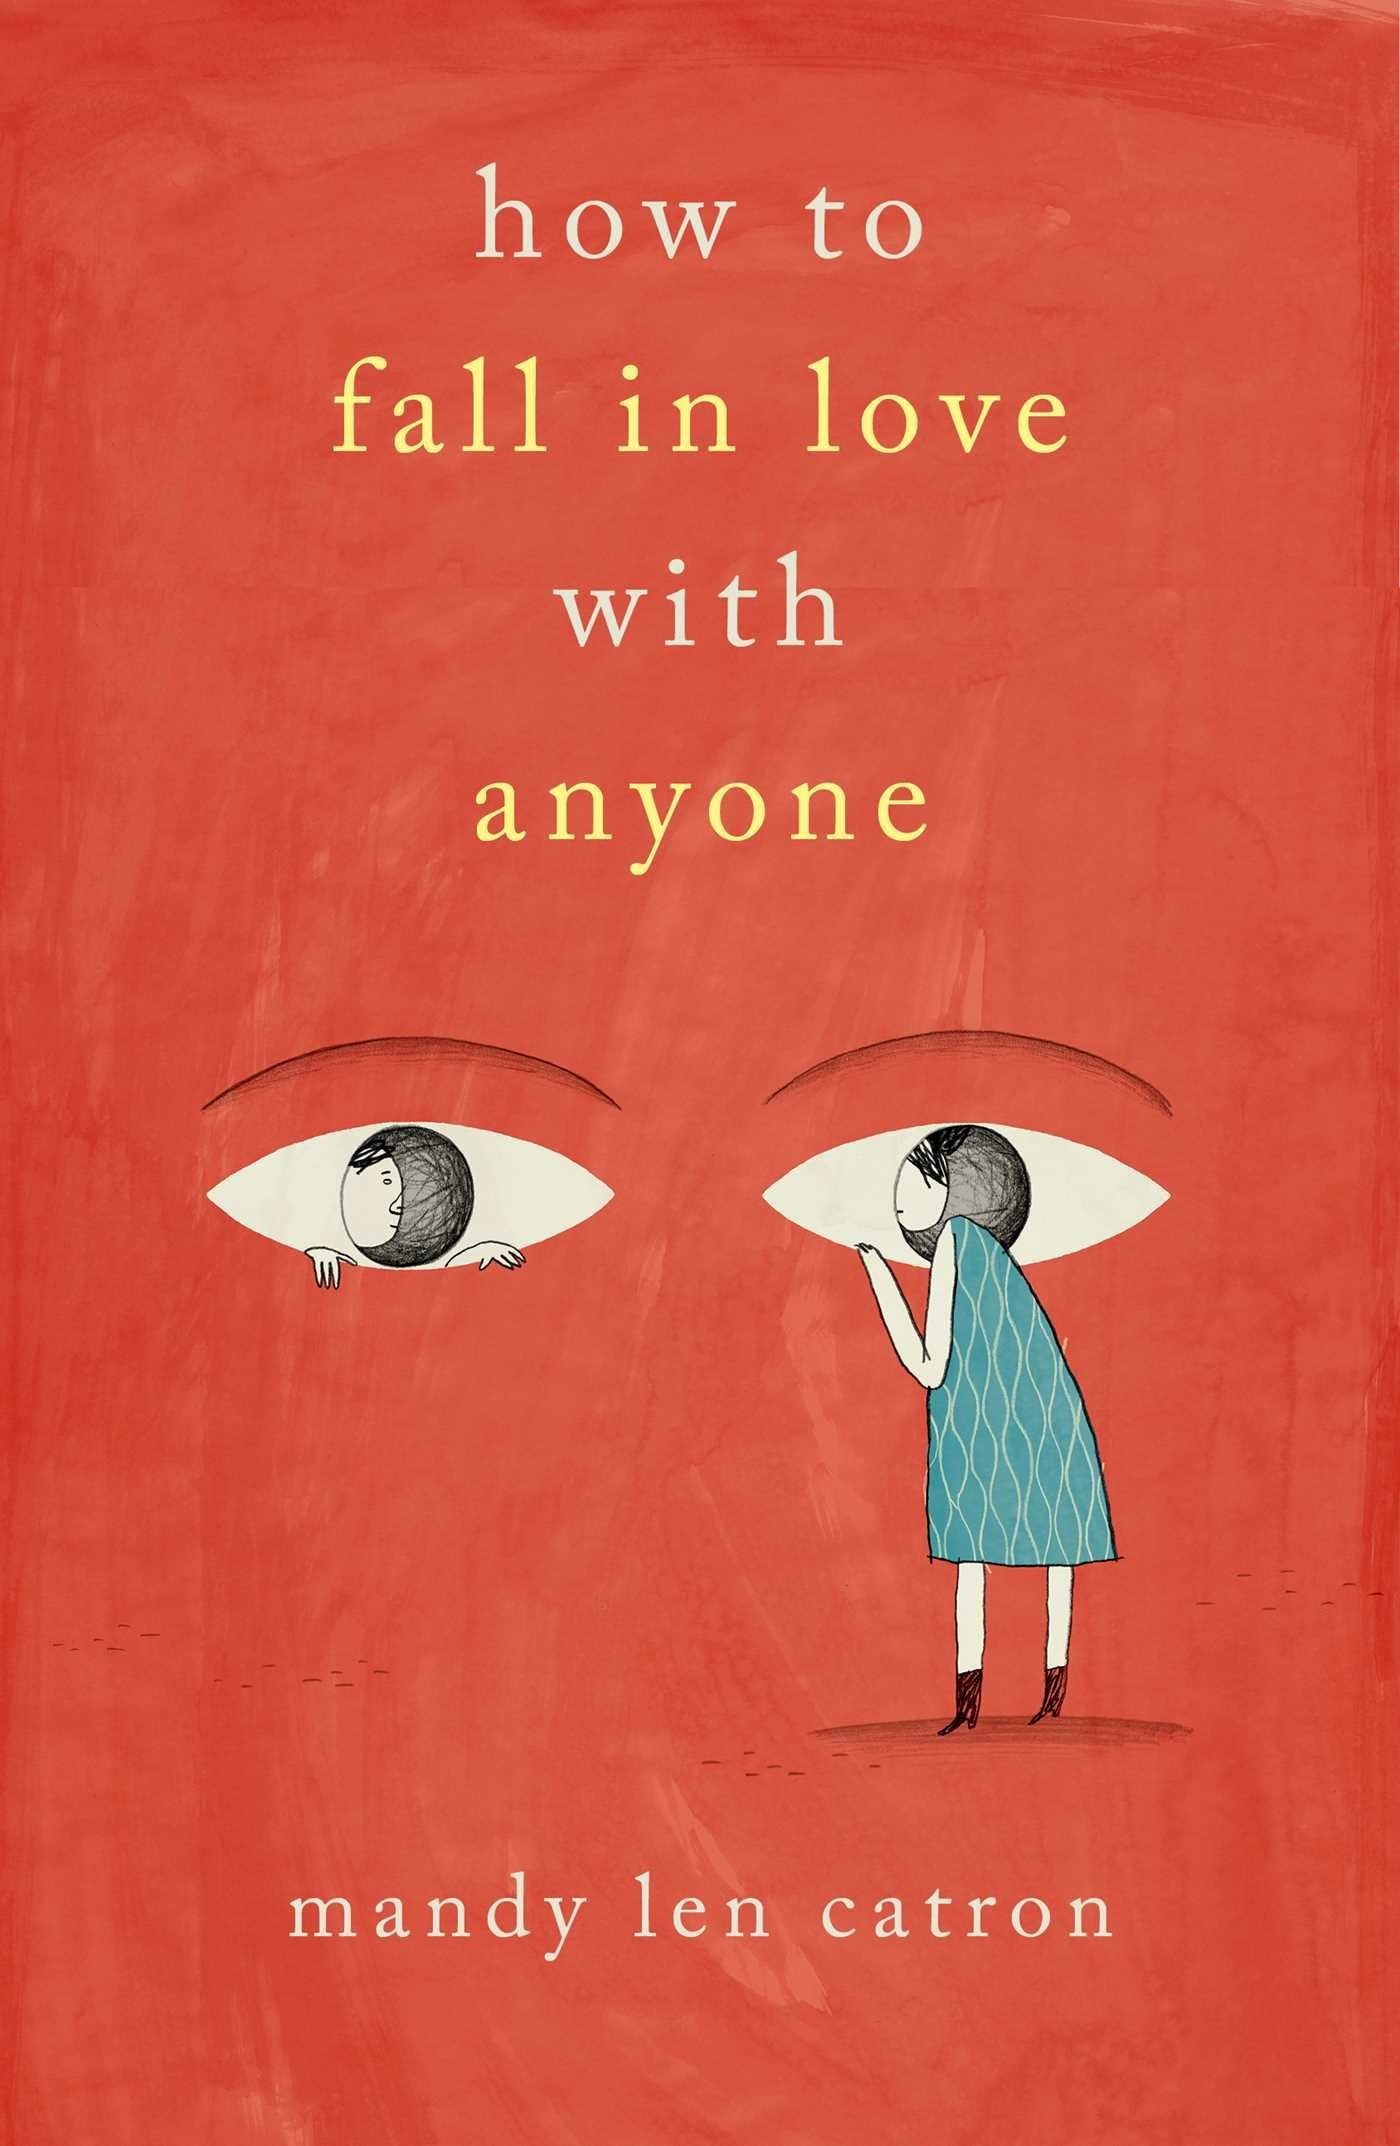 How to Fall in Love with Anyone - Mandy Len Catron